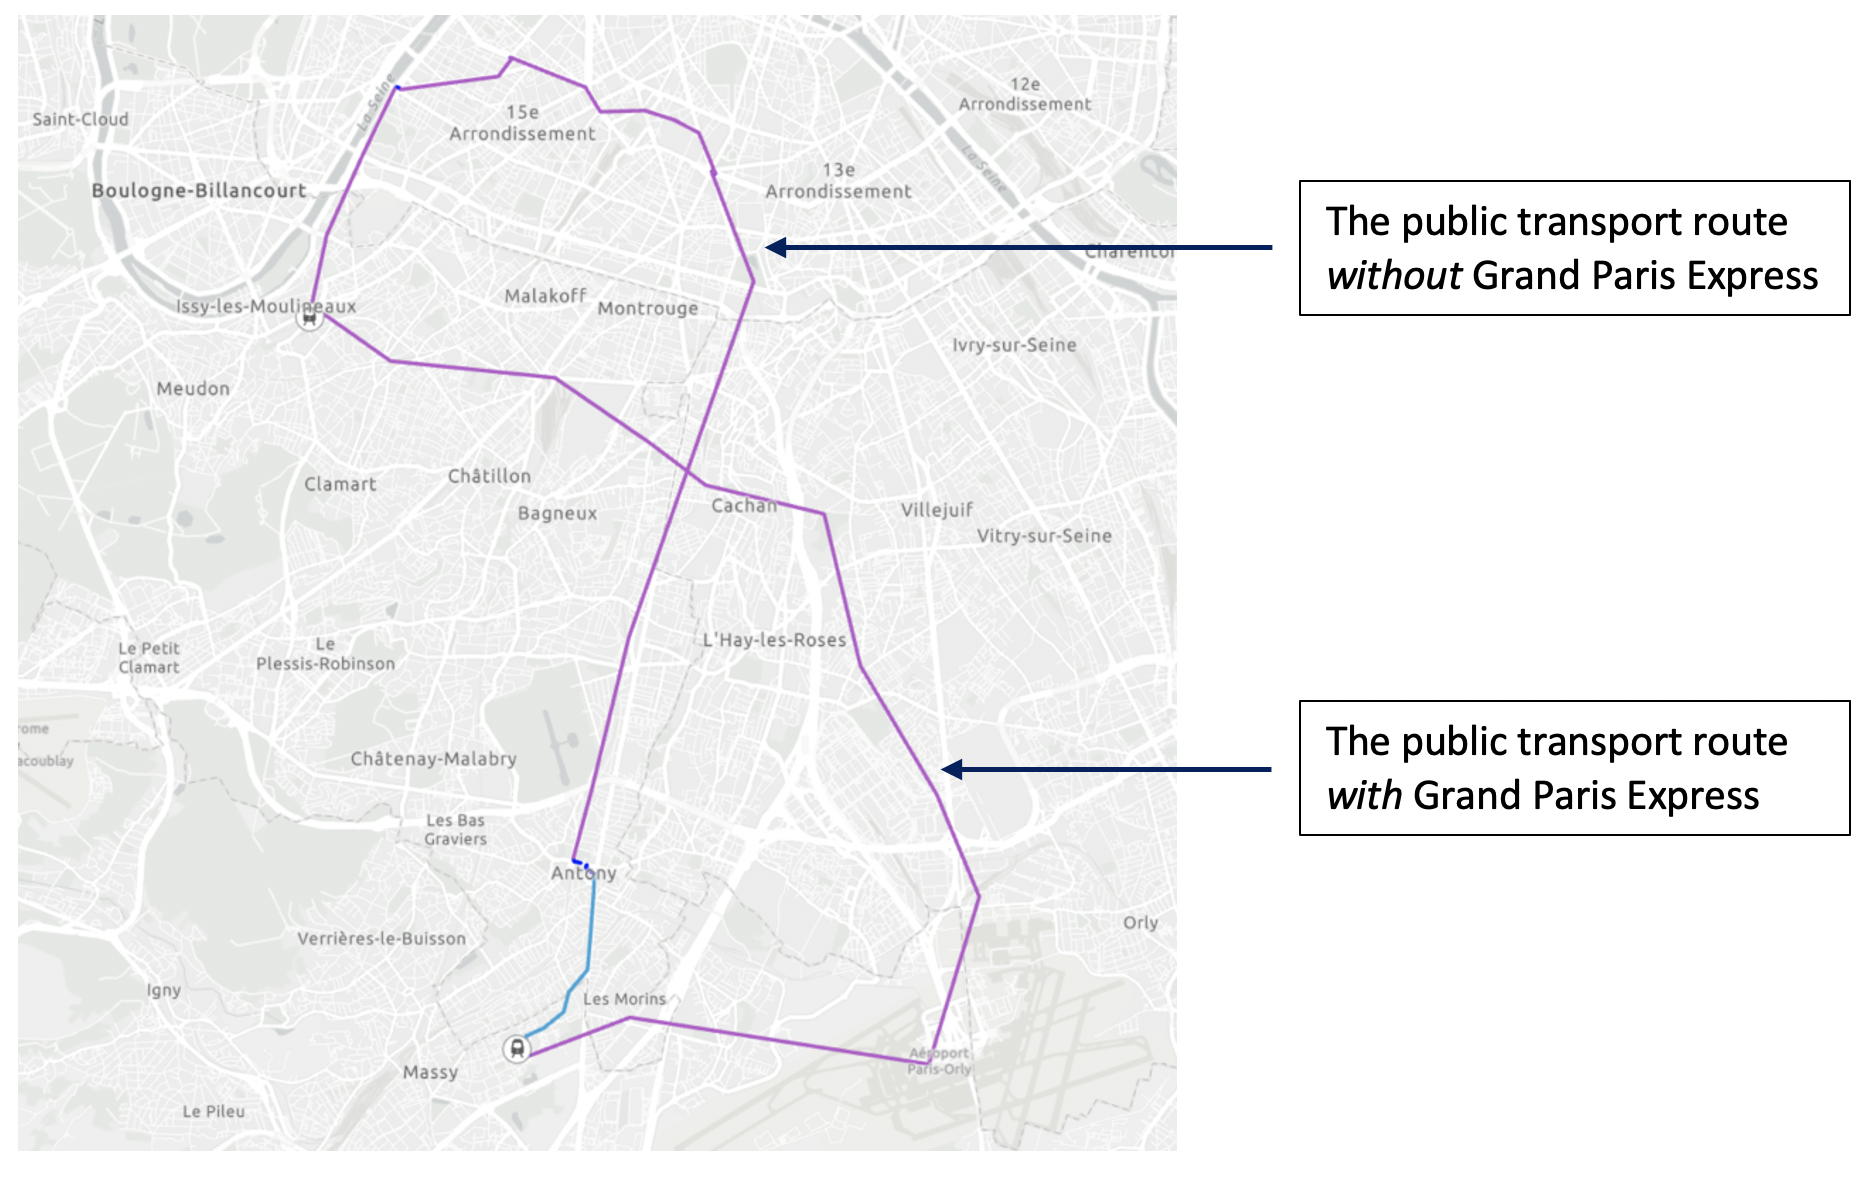 Public transport routes with and without Grand Paris Express